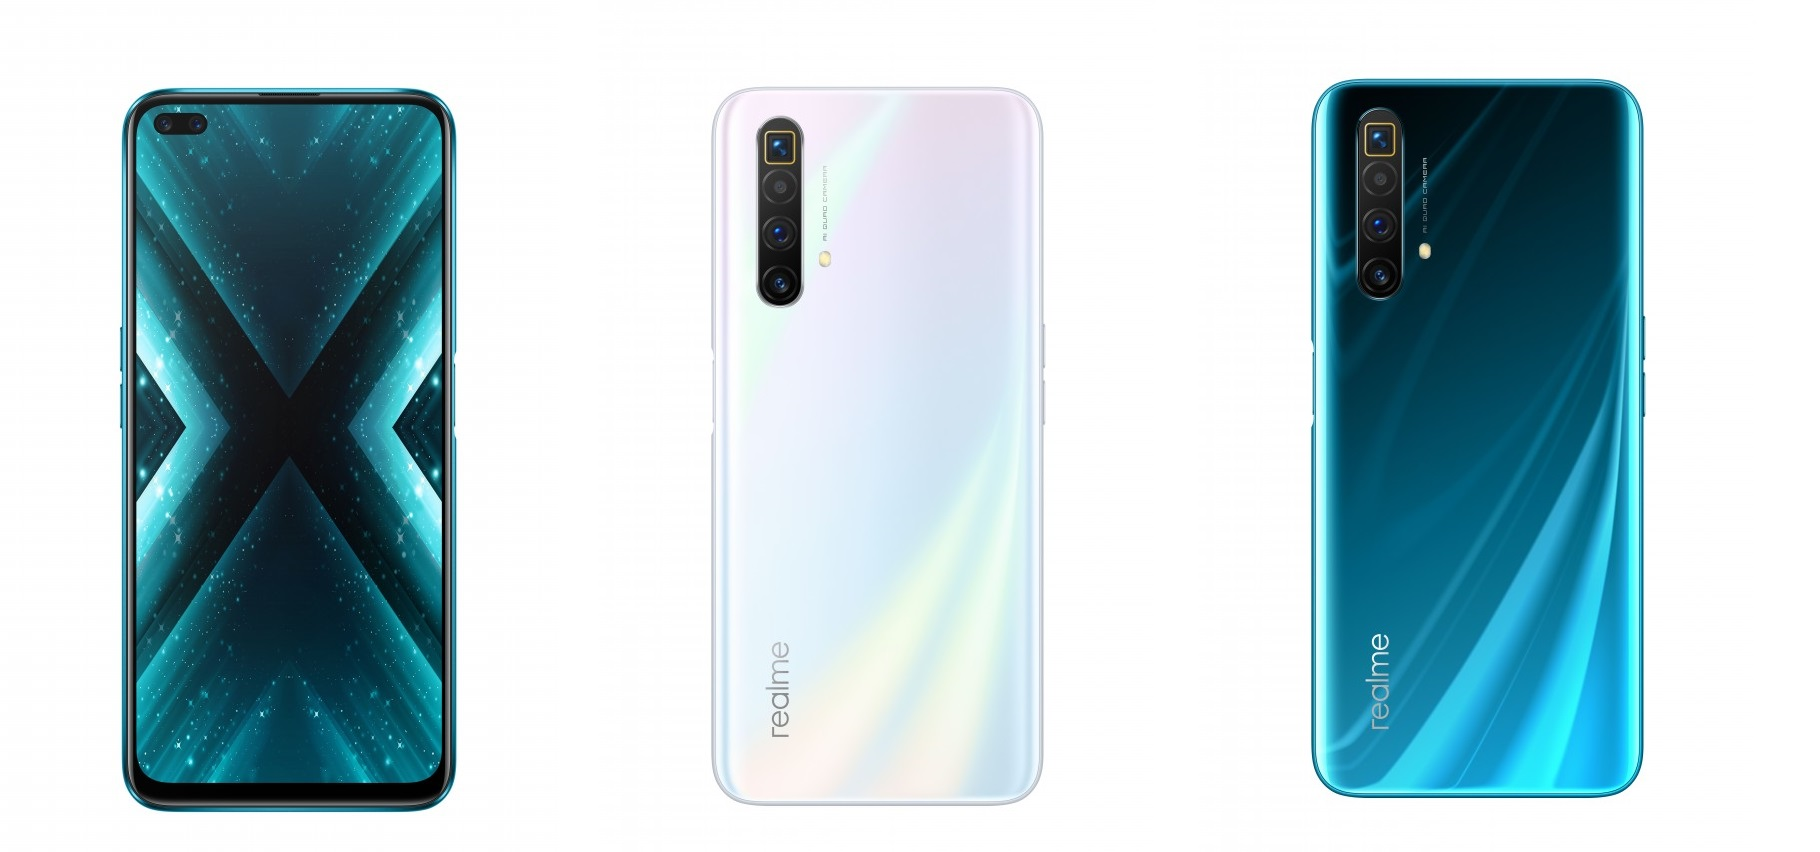 Realme X3 Superzoom Cameraphone With 60x Zoom And 120hz Screen